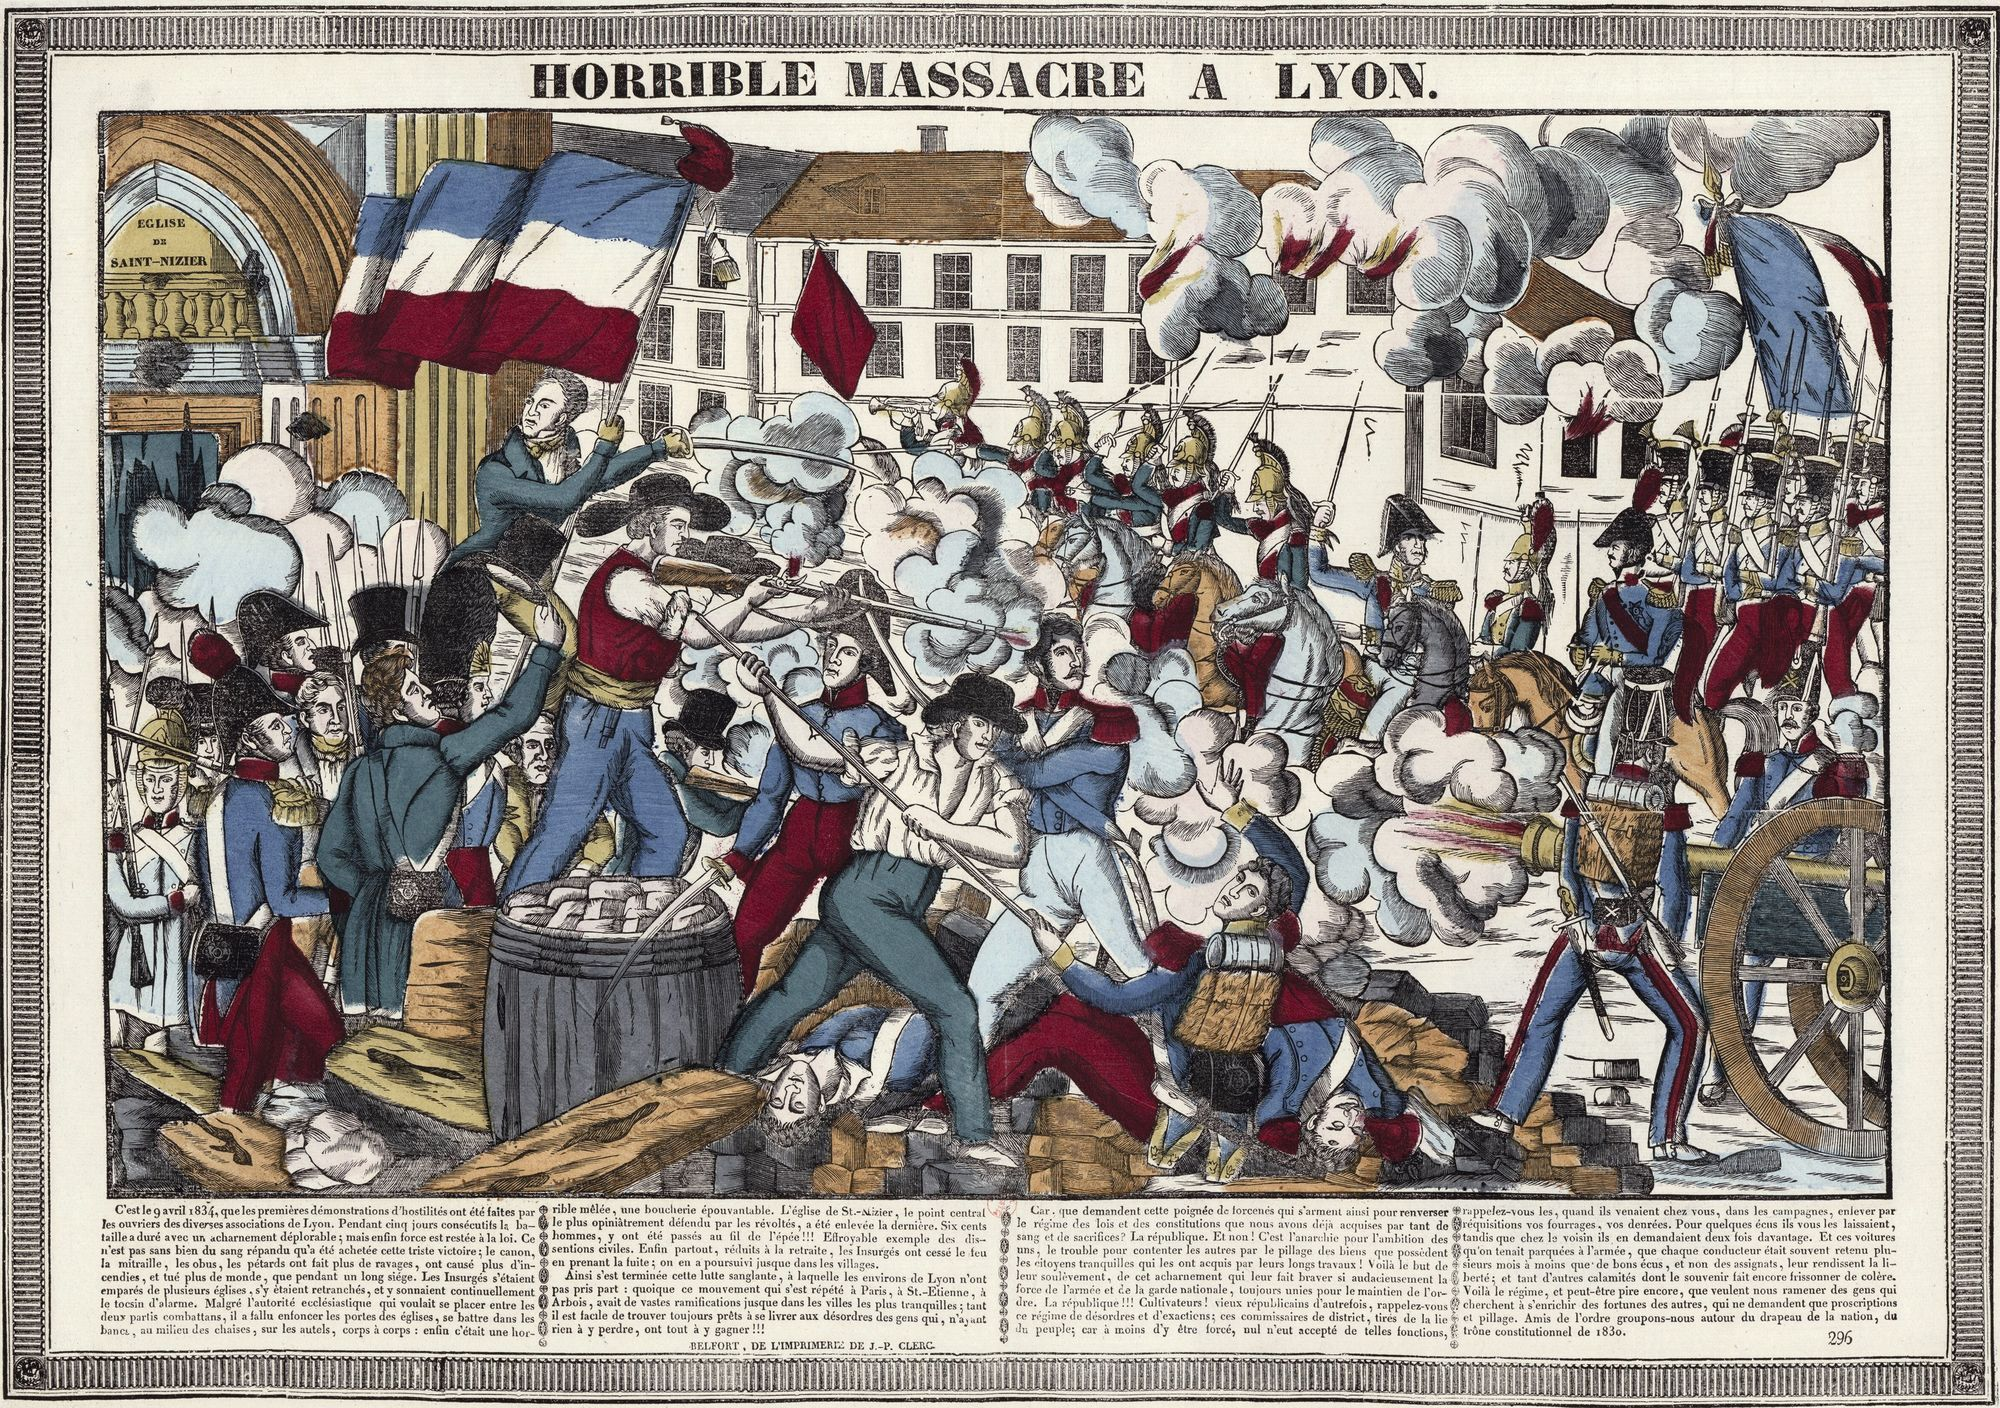 Anonyme, Horrible massacre à Lyon, 1834, estampe, 39,5 x 56,5 cm, BnF, Paris.